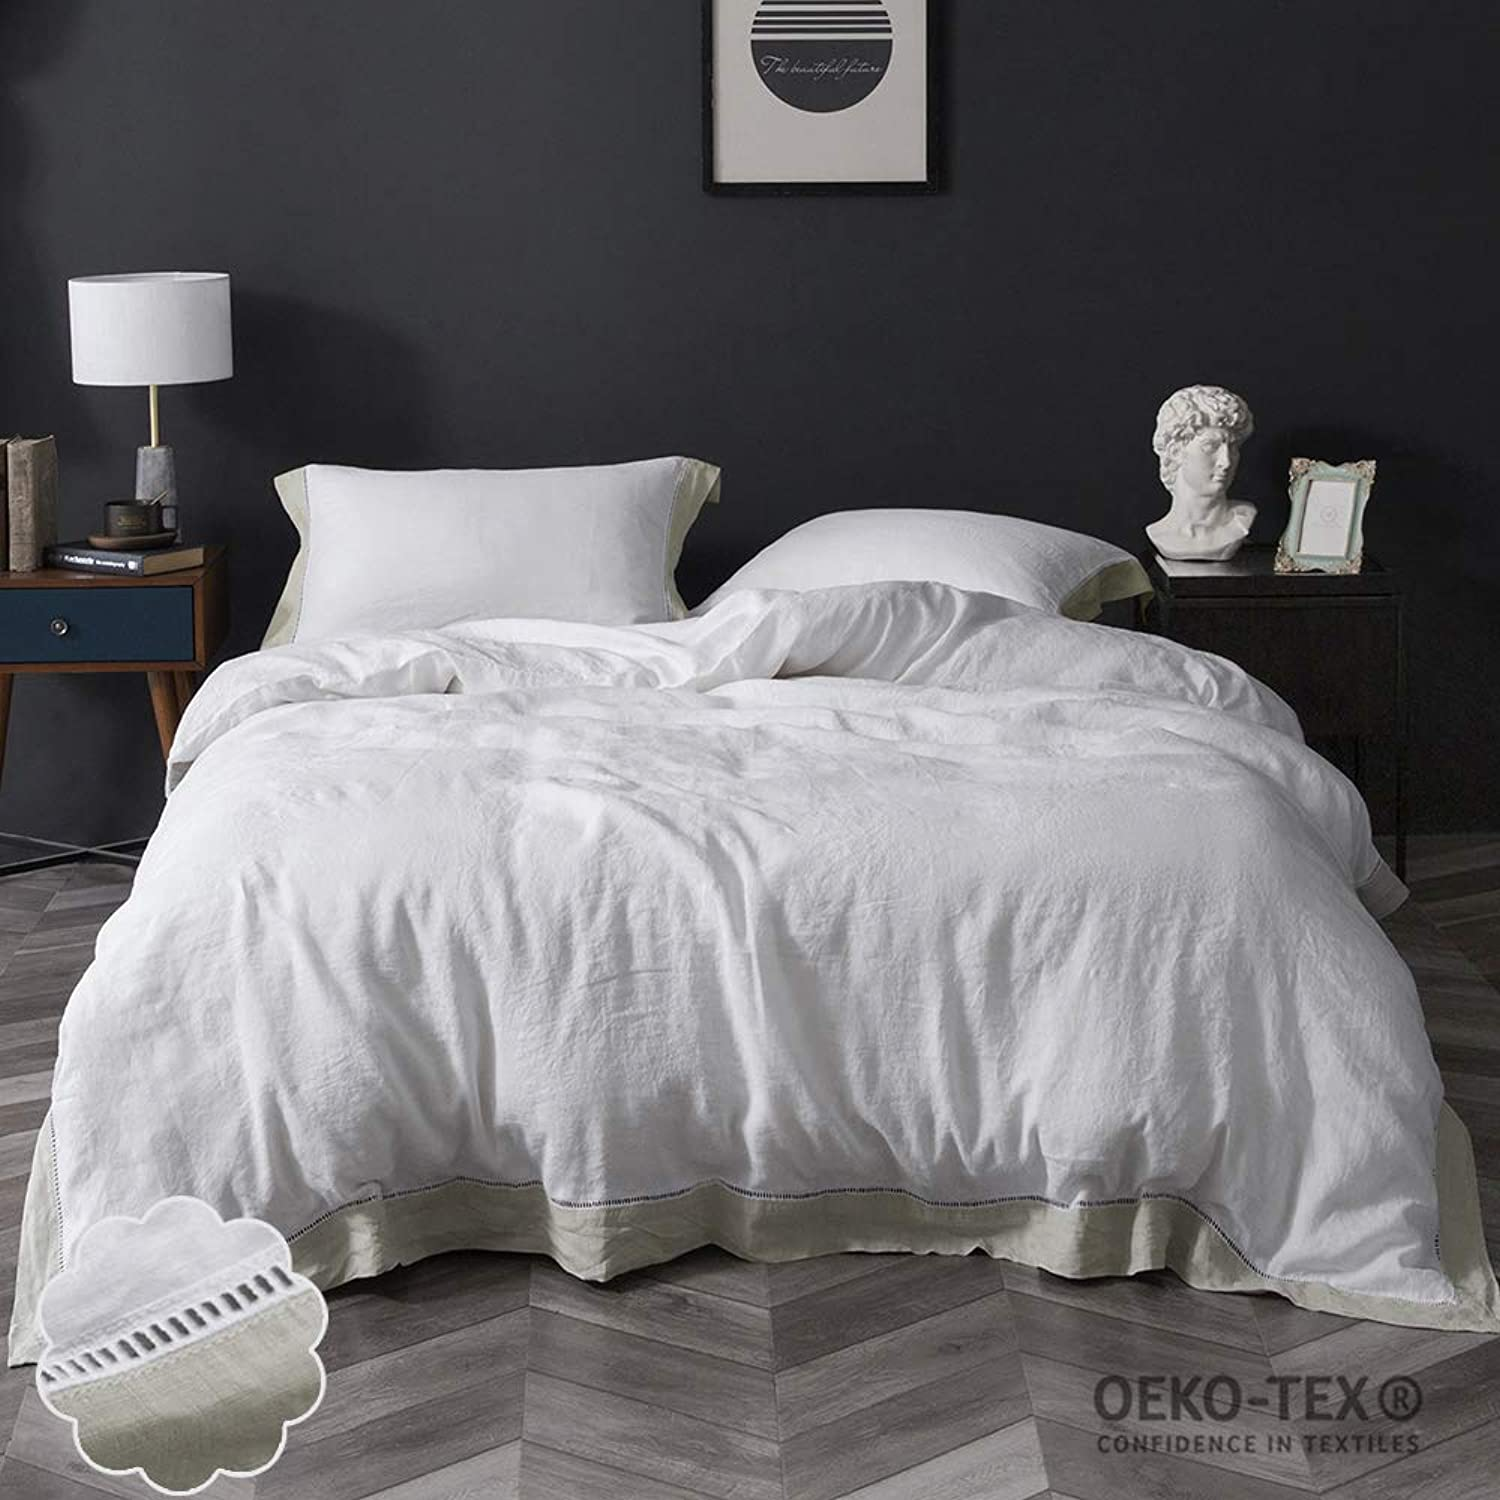 Simple&Opulence 100% Stone Washed Linen 3Pcs Hemstitch Duvet Cover Set(Queen, Linen Frame)